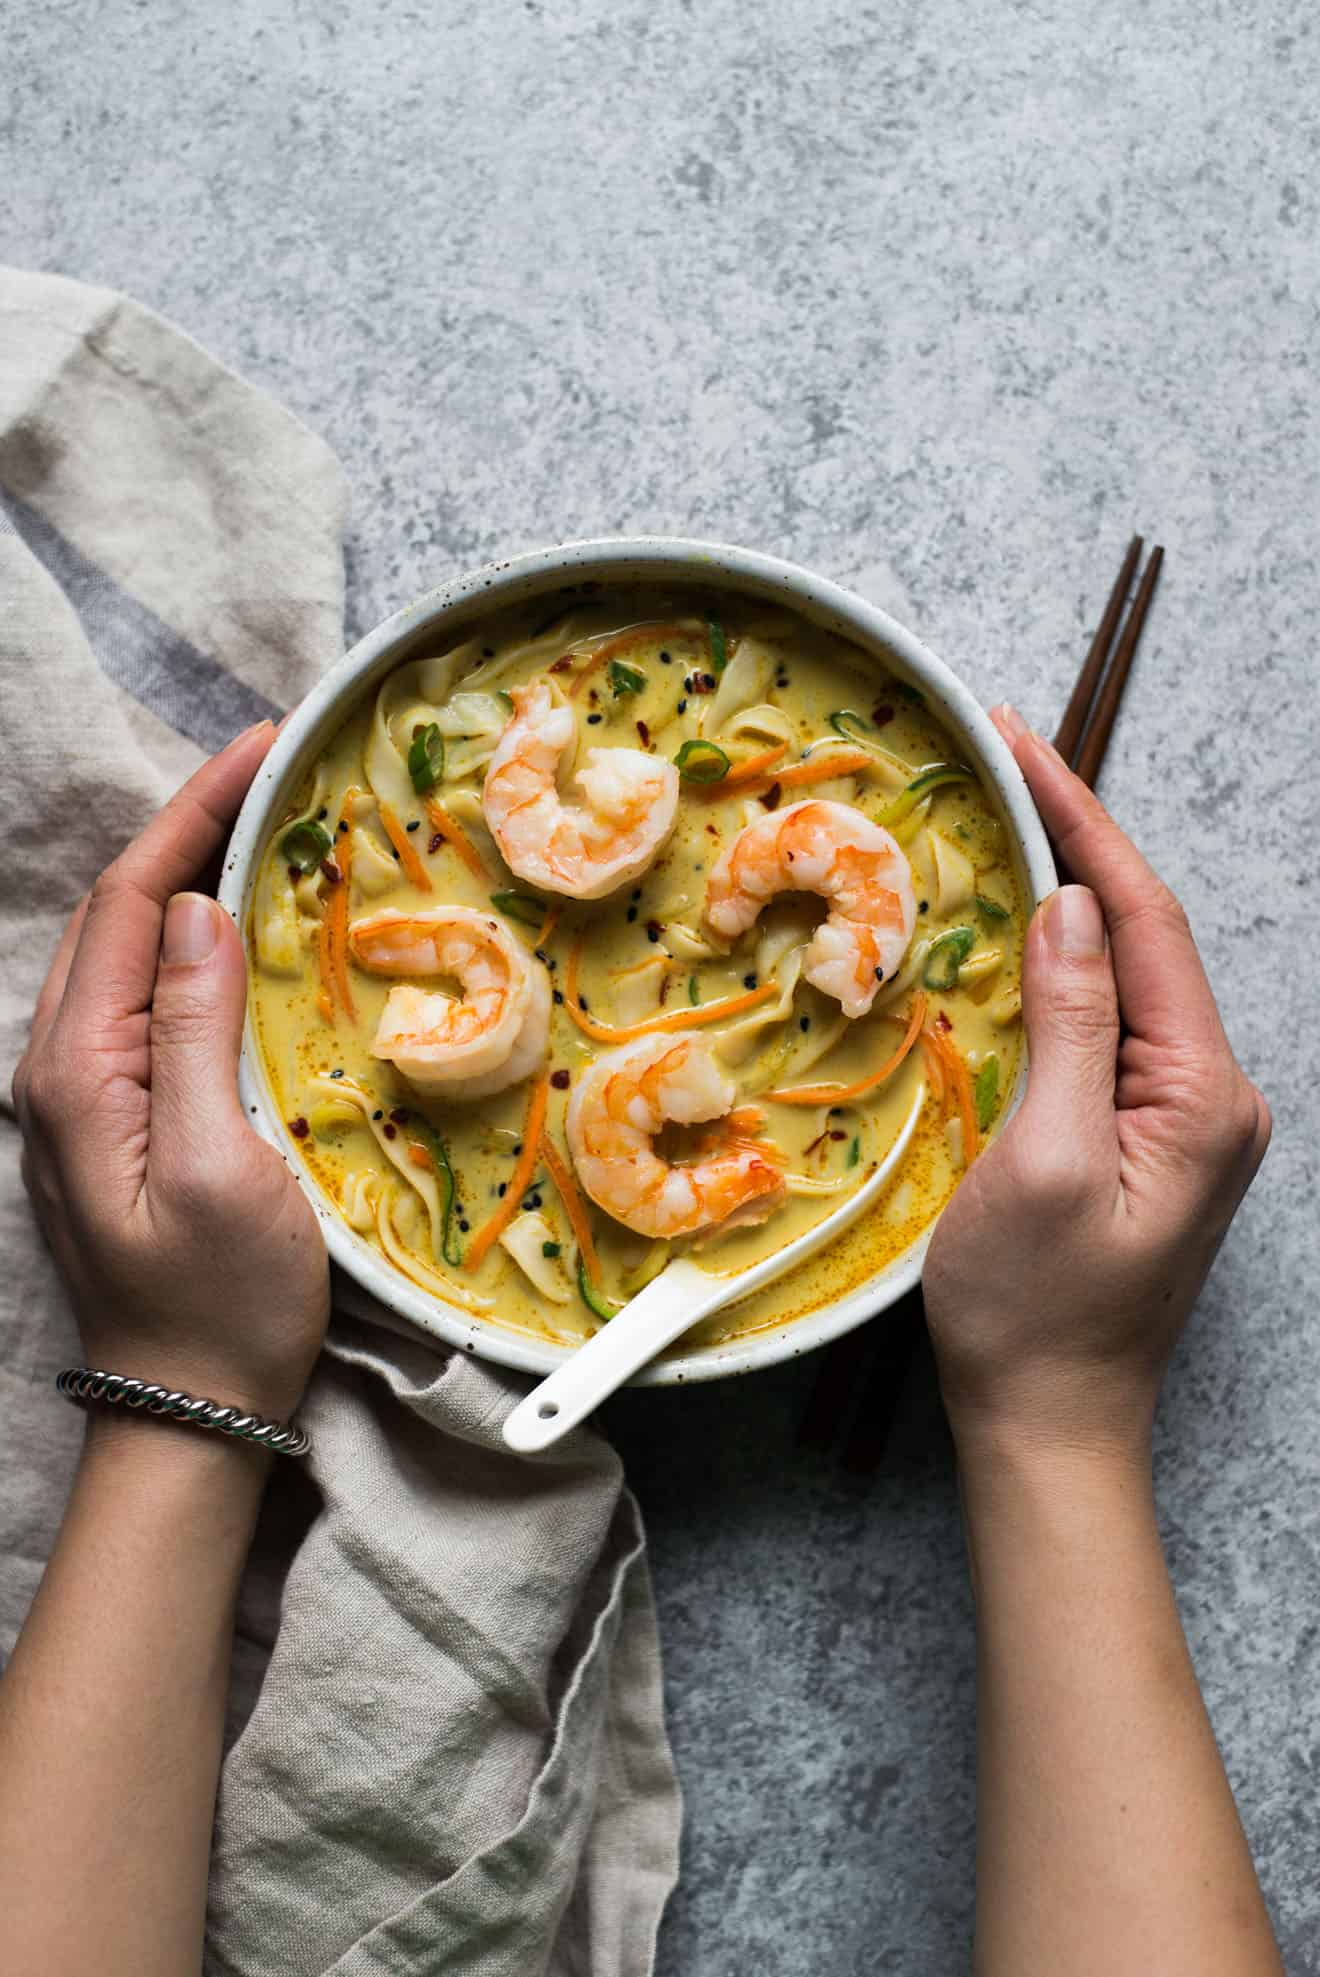 Yellow Curry Noodles with Tofu Shirataki - a low carb, healthy curry noodle soup that is great for weeknights!